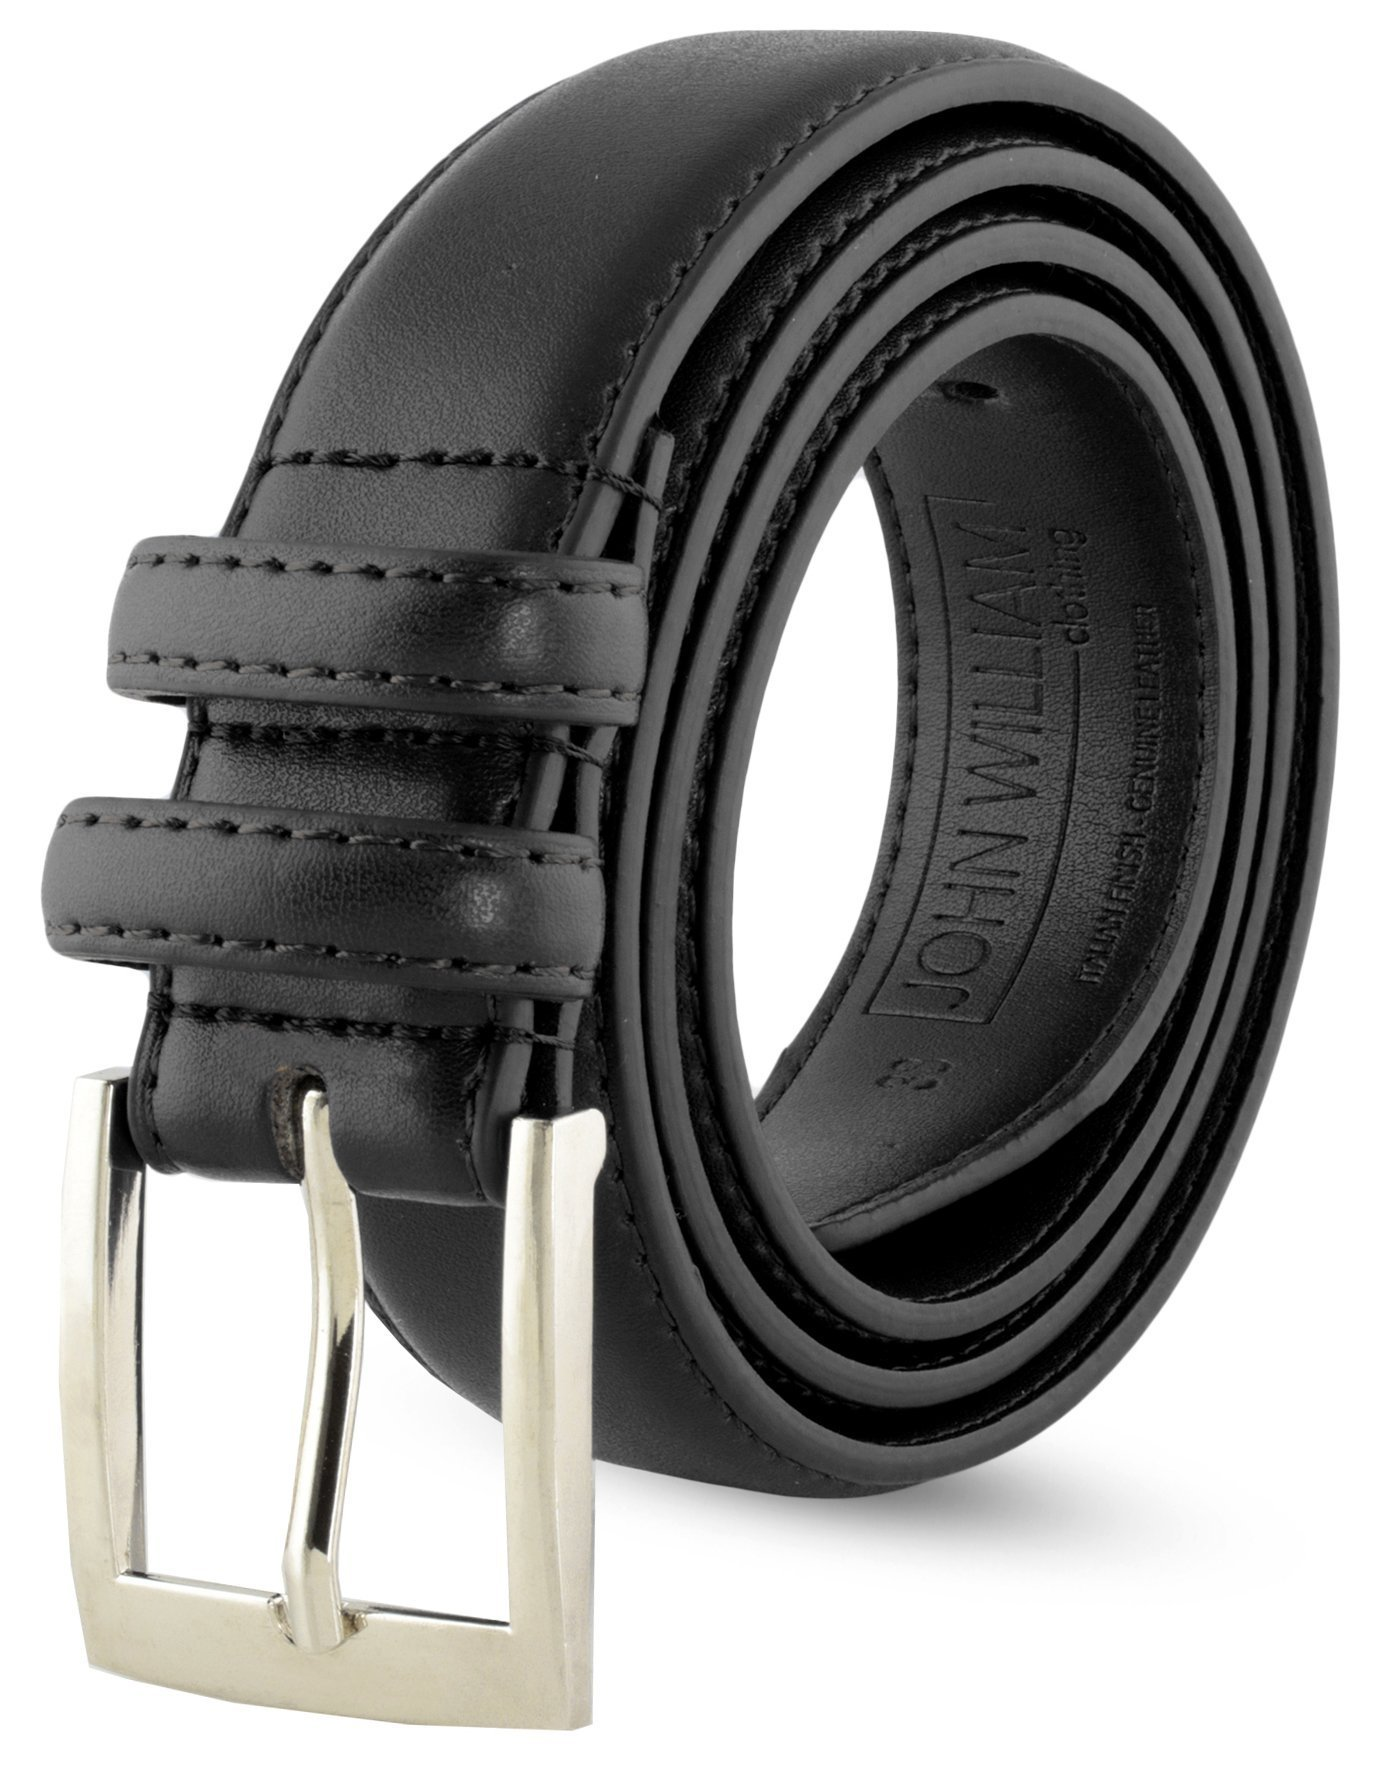 Leather Belts For Men - Mens Black Belt - 1.25'' Dress & Casual Men's Belt in Gift Bag - 44